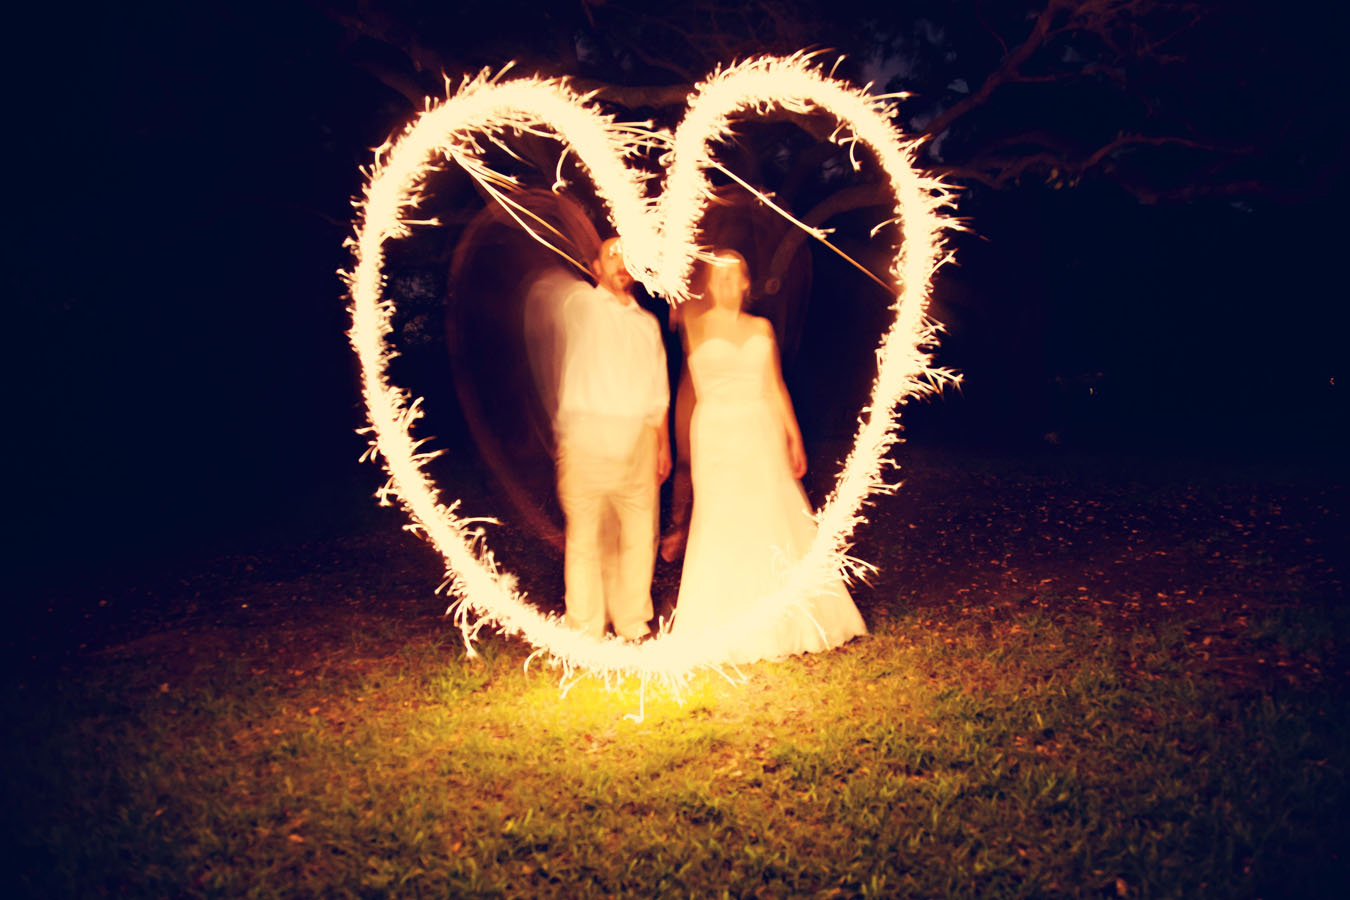 Wedding Photography Sparklers: Chloe Moore Photography // The Blog: Wedding Sparklers